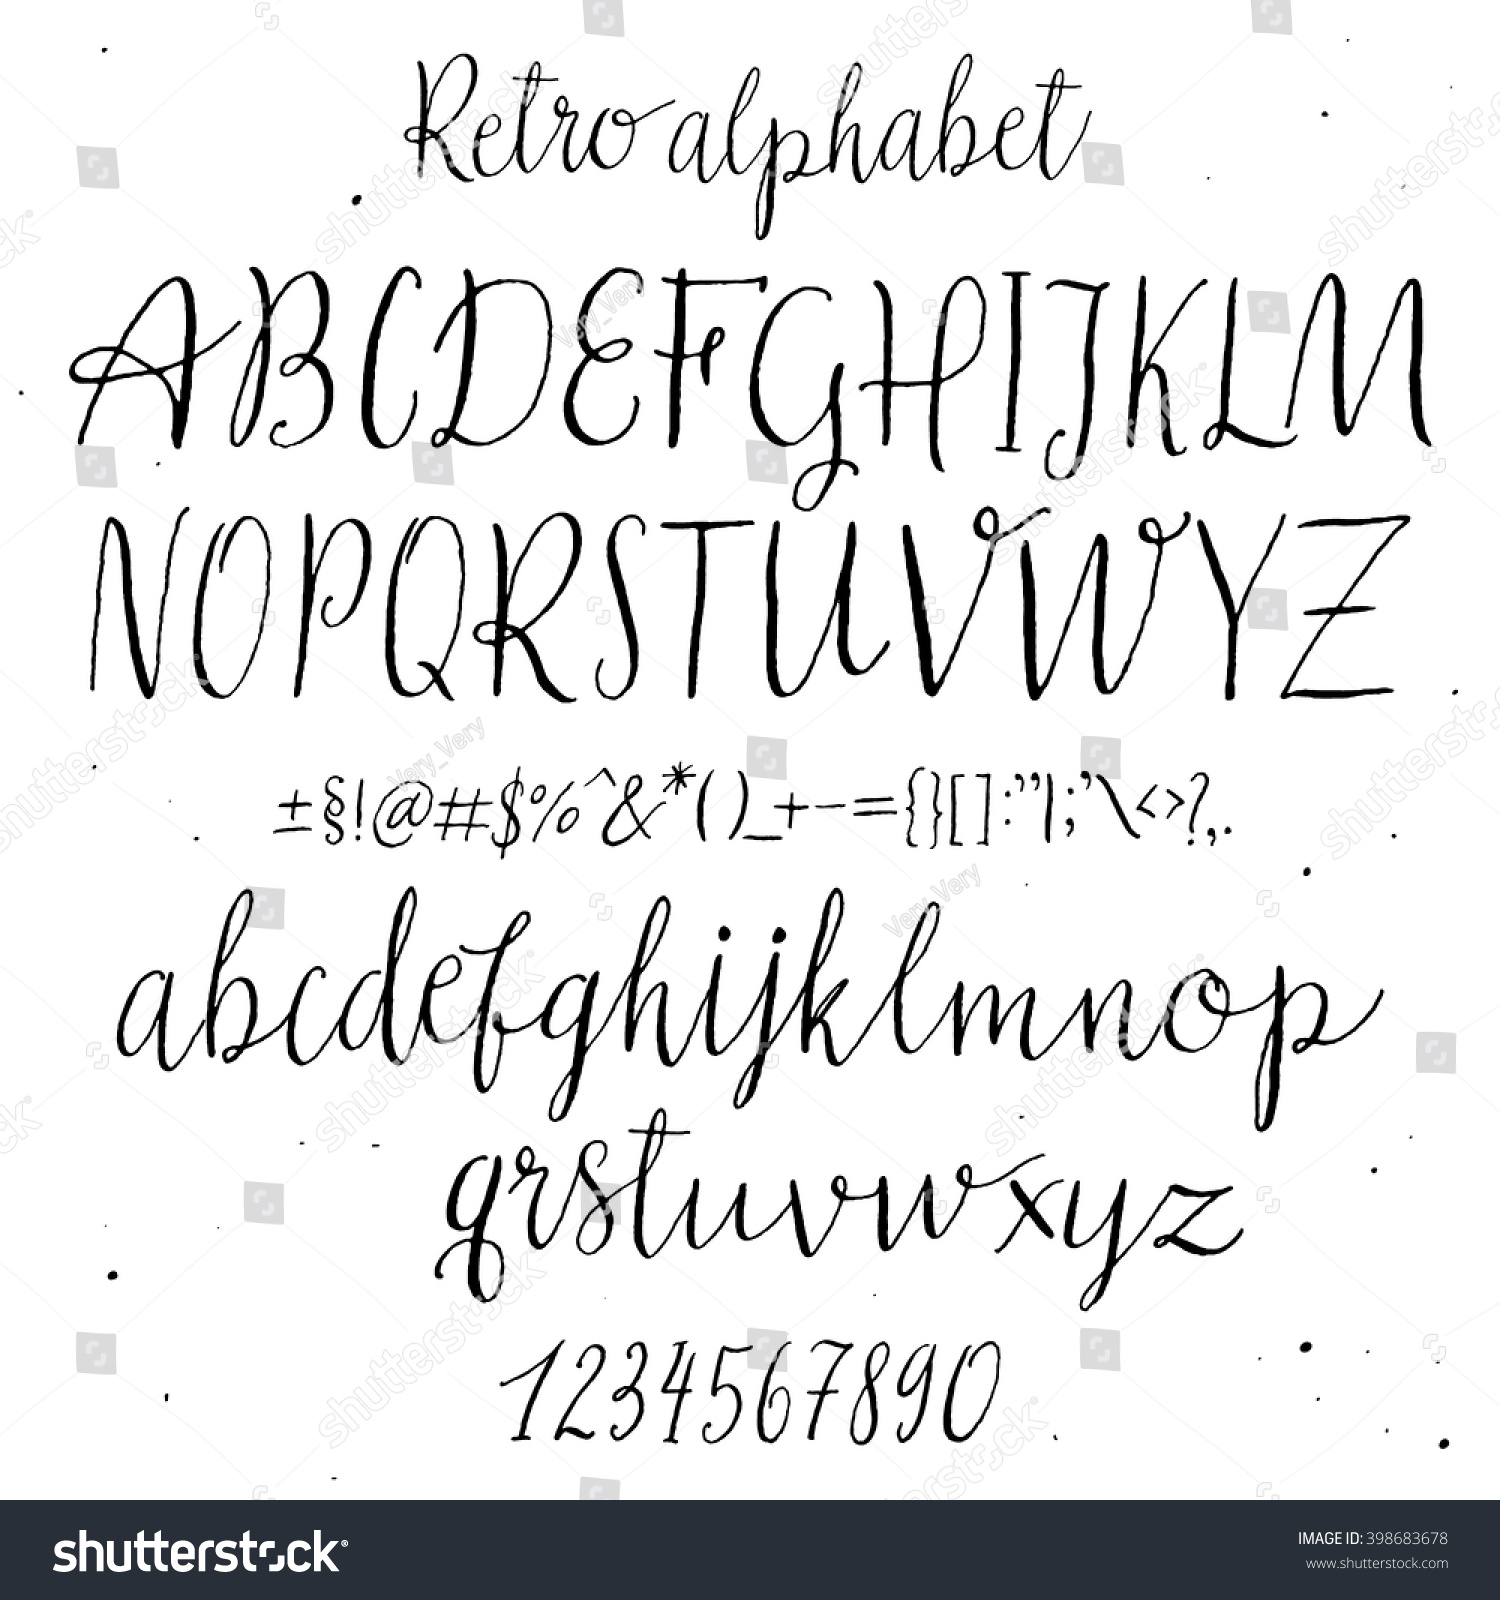 hand drawn lettering retro alphabet script painted letters 12074 | stock vector retro hand drawn alphabet script painted letters handwritten cursive typeface lettering and 398683678